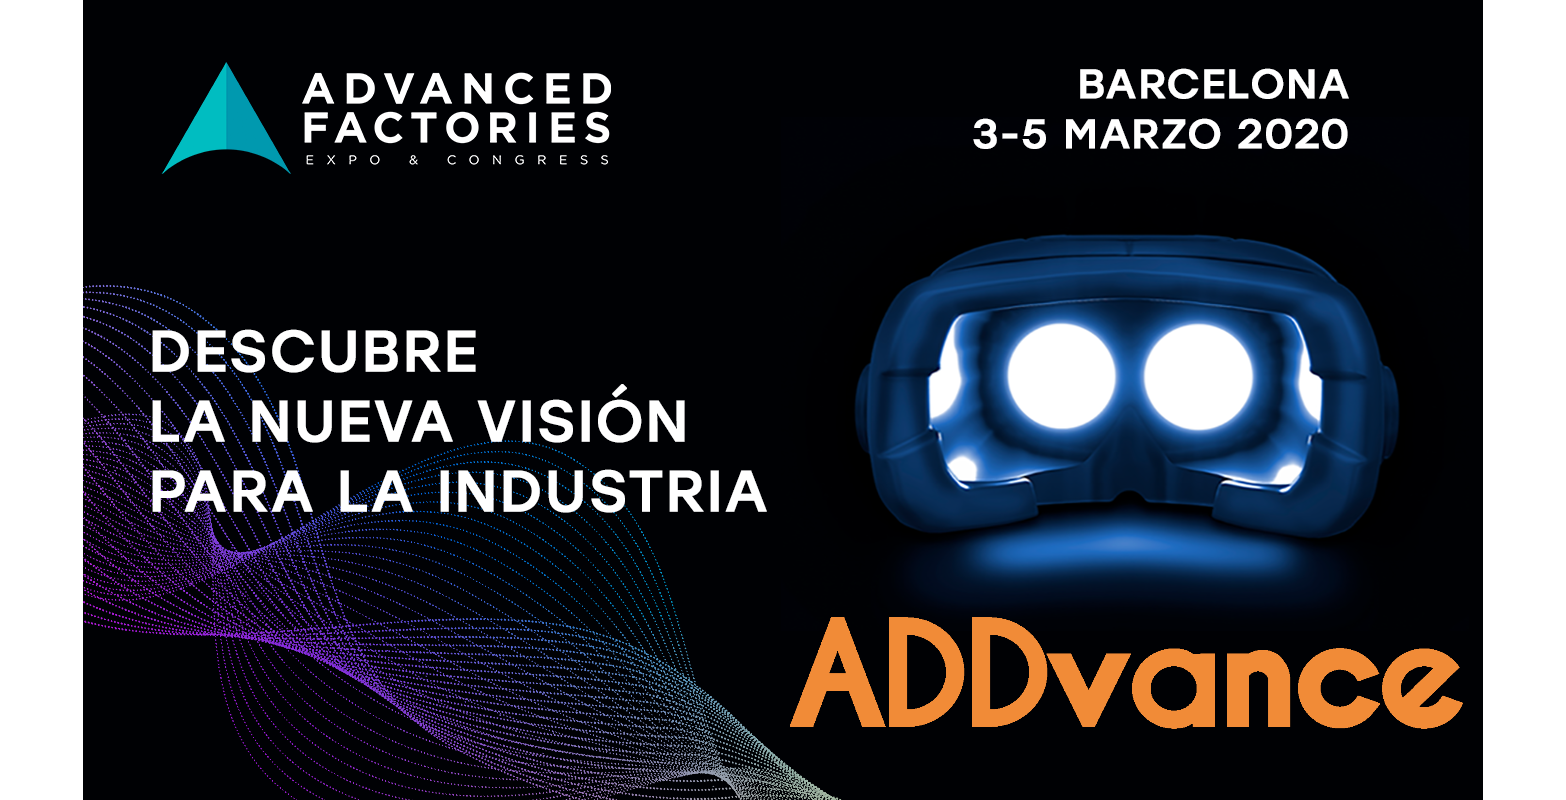 ADDvance will participate in the Industry 4.0 Congress at ADVANCED FACTORIES